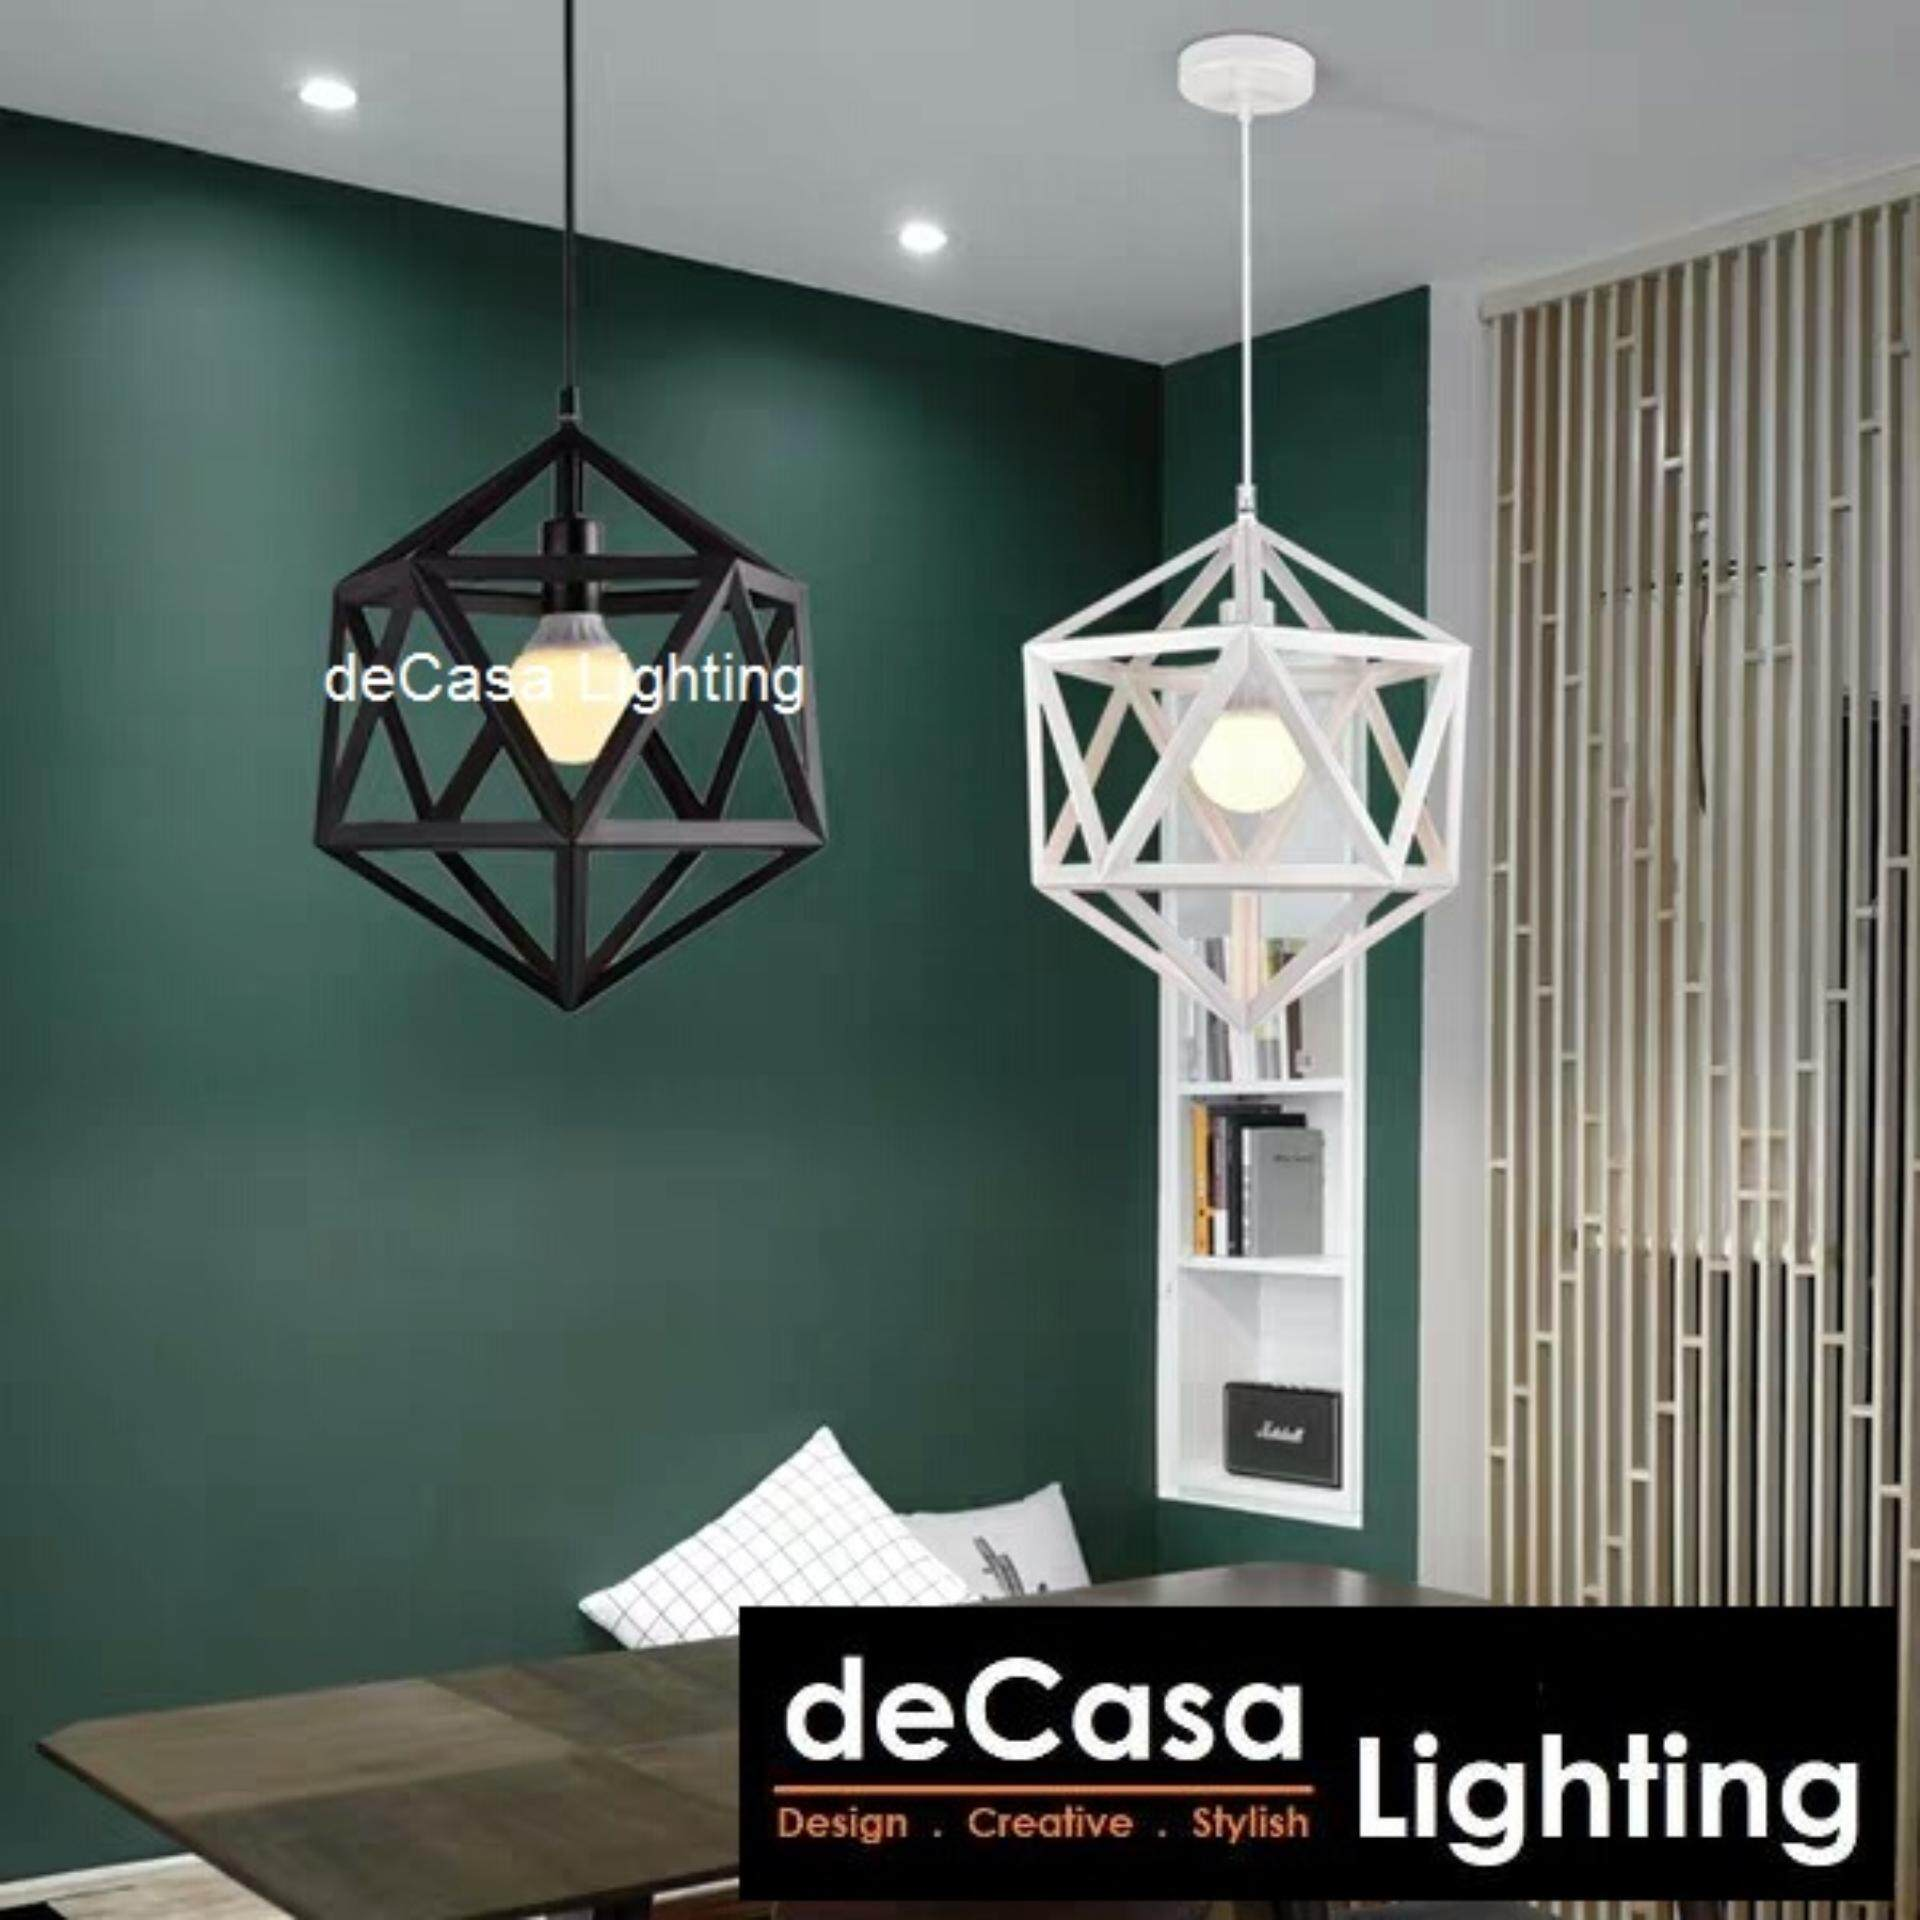 Diamond Black Ceiling Light Hanging Light Brand new and high quality Adjustable length Suitable for dining room, bedroom, living room Great decoration Restaurant Cafe (JL-10153-350-BK)